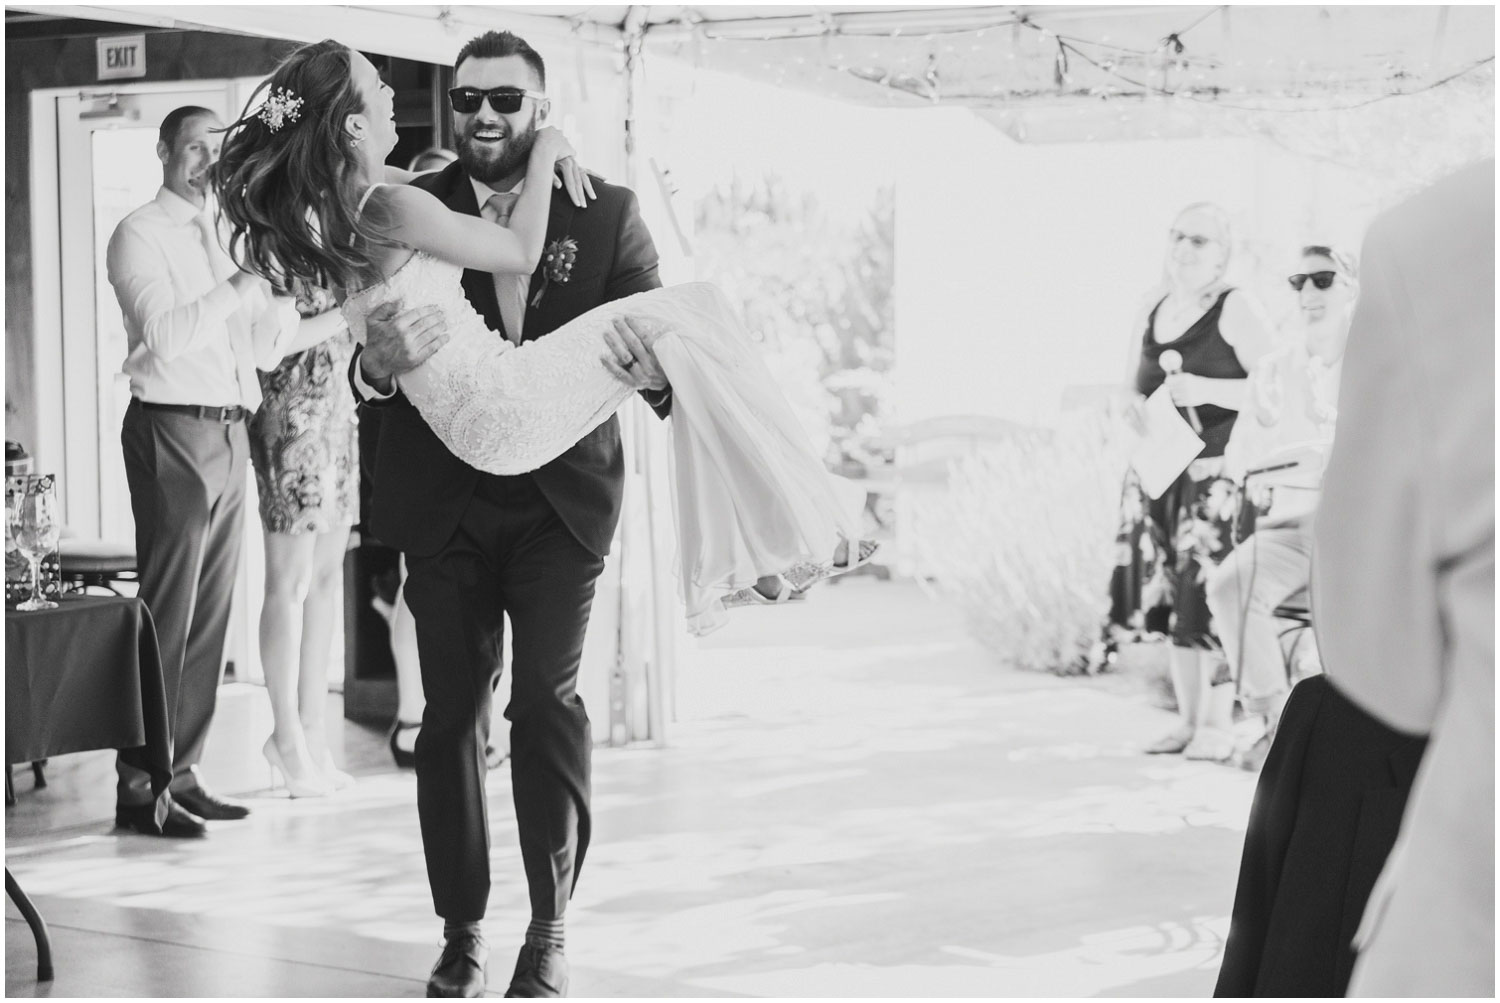 groom carrying bride into reception for wedding toasts and dancing